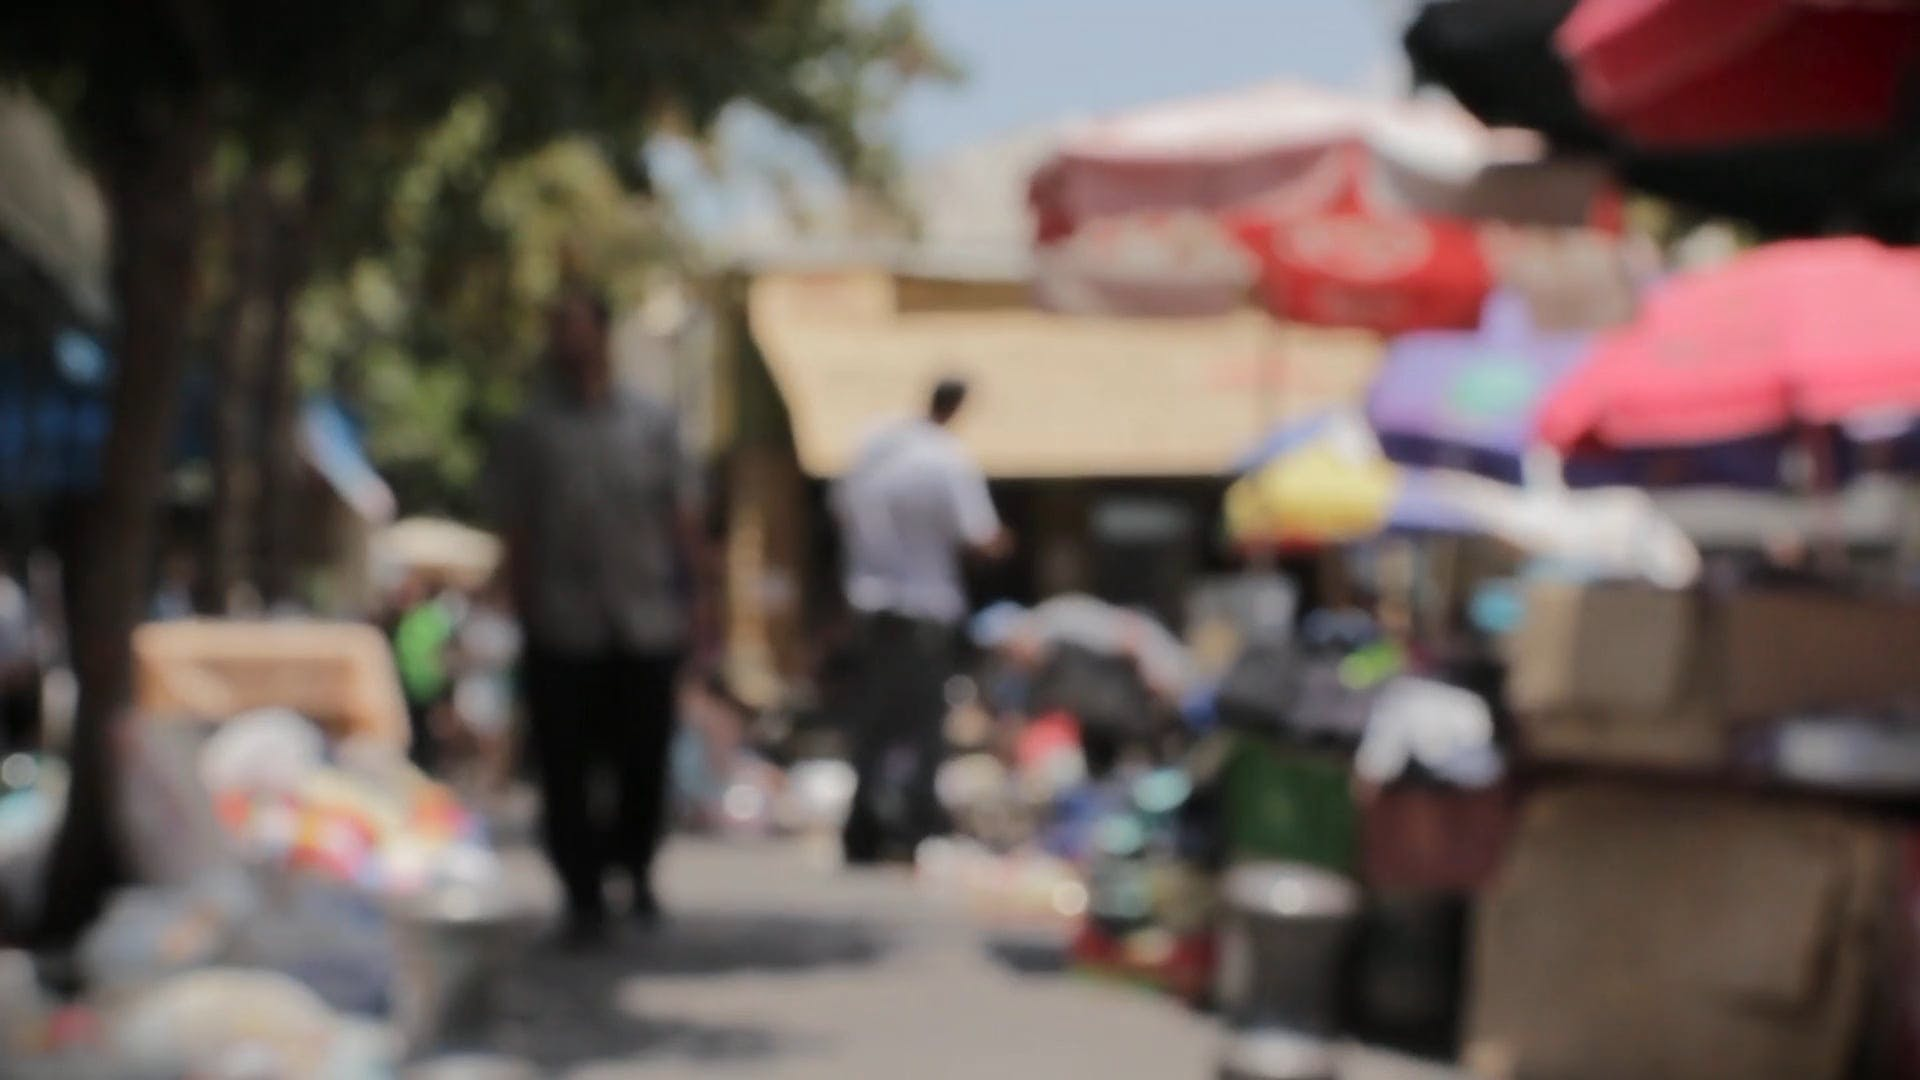 People at market - Blurred video